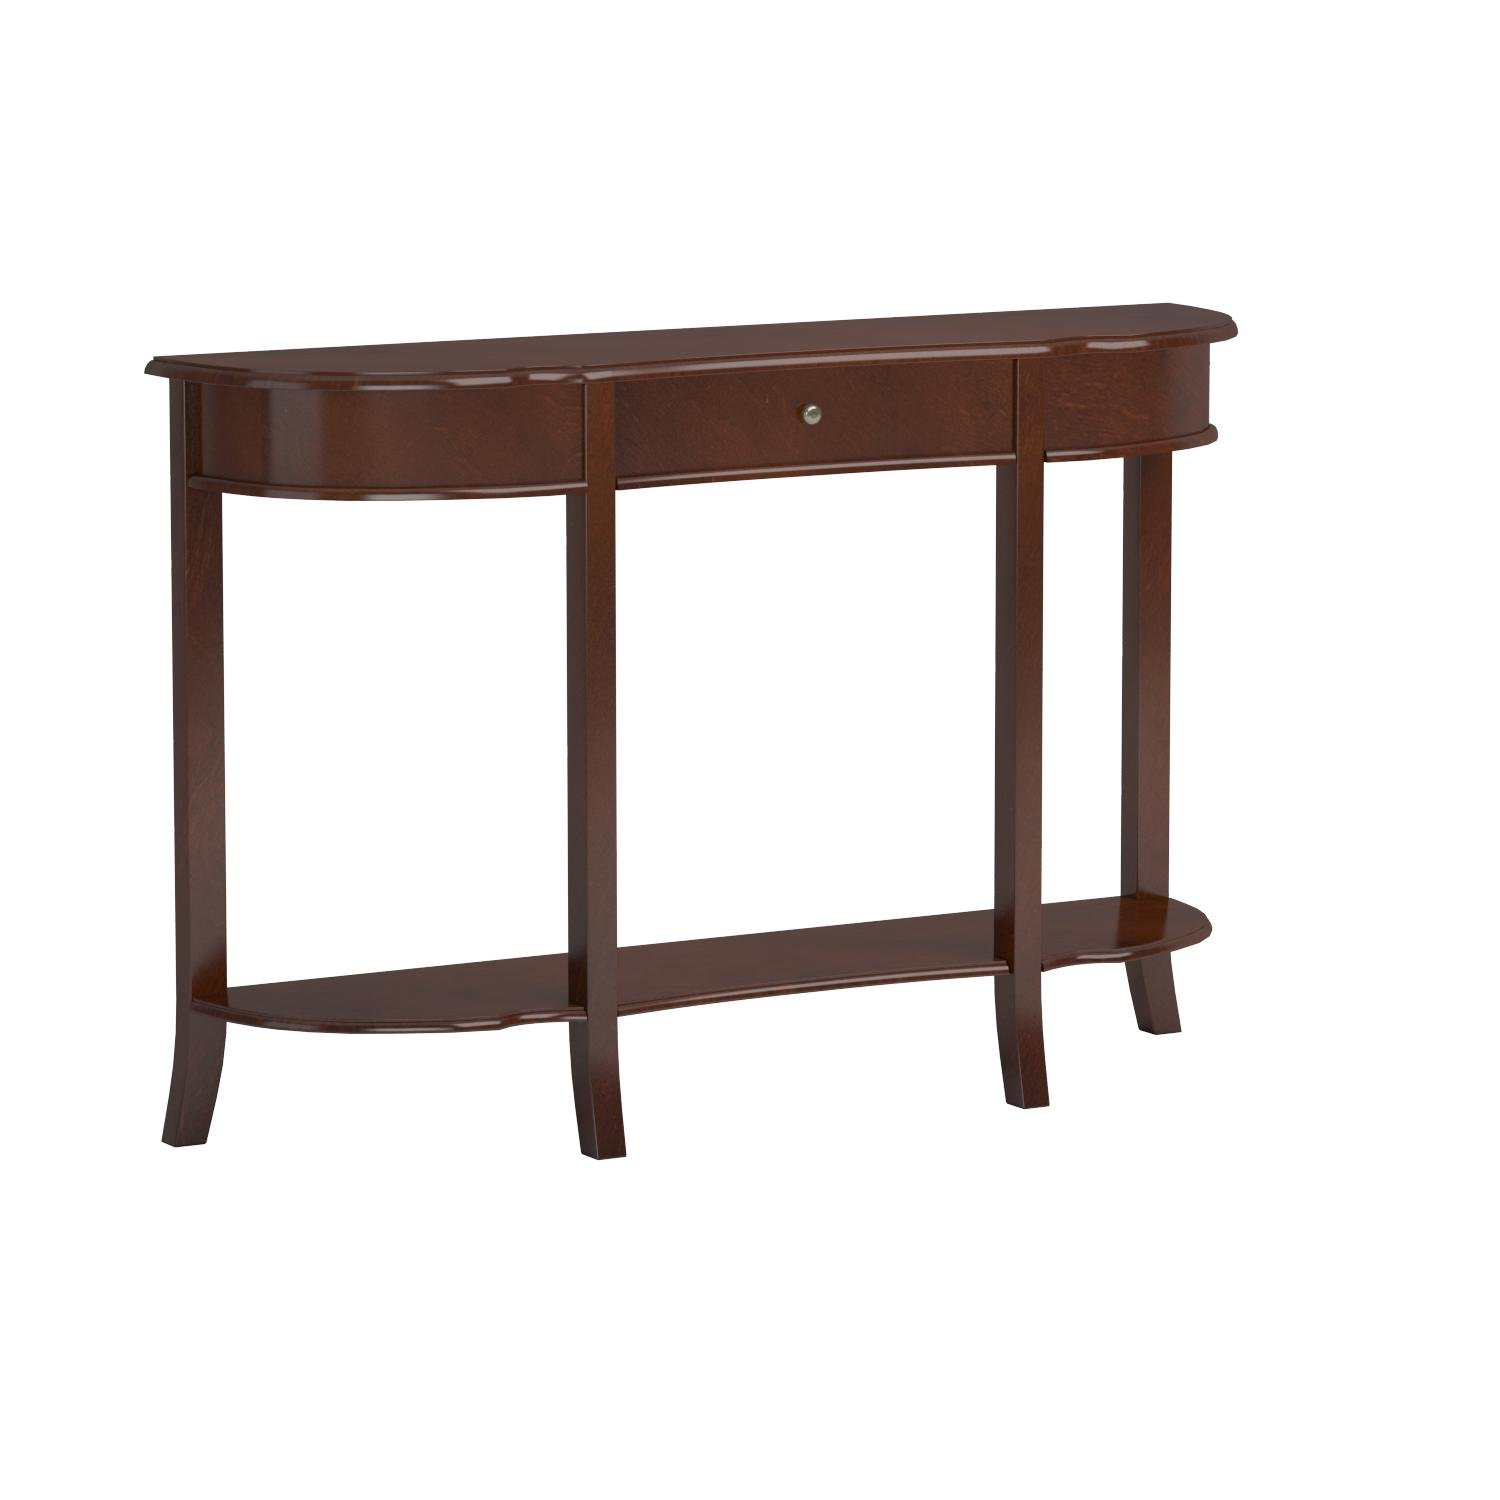 Frenchi Home Furnishing Console Sofa Table with Drawer, Walnut